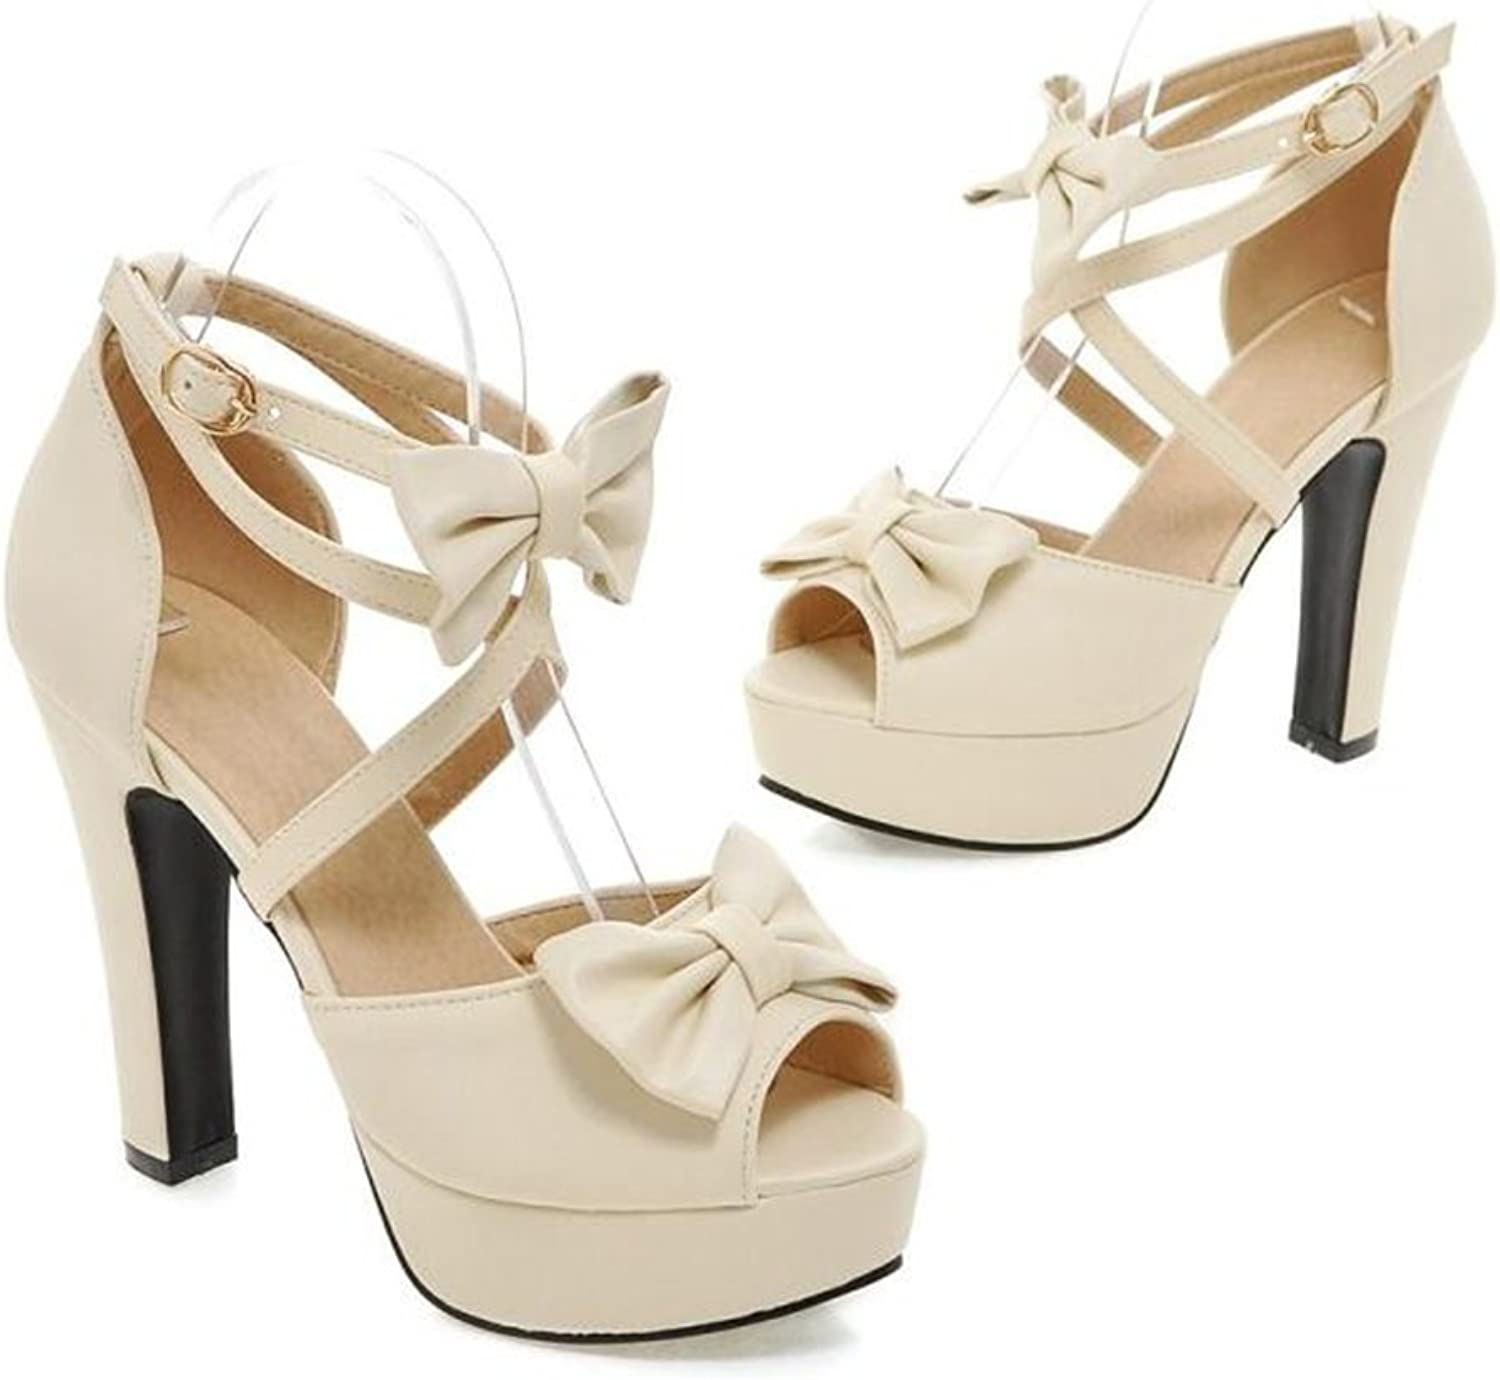 Women's shoes PU Summer Comfort Ankle Strap Sandals Walking shoes Chunky Heel Platform Block Heel Peep Toe Bowknot Buckle For Casual Sandals